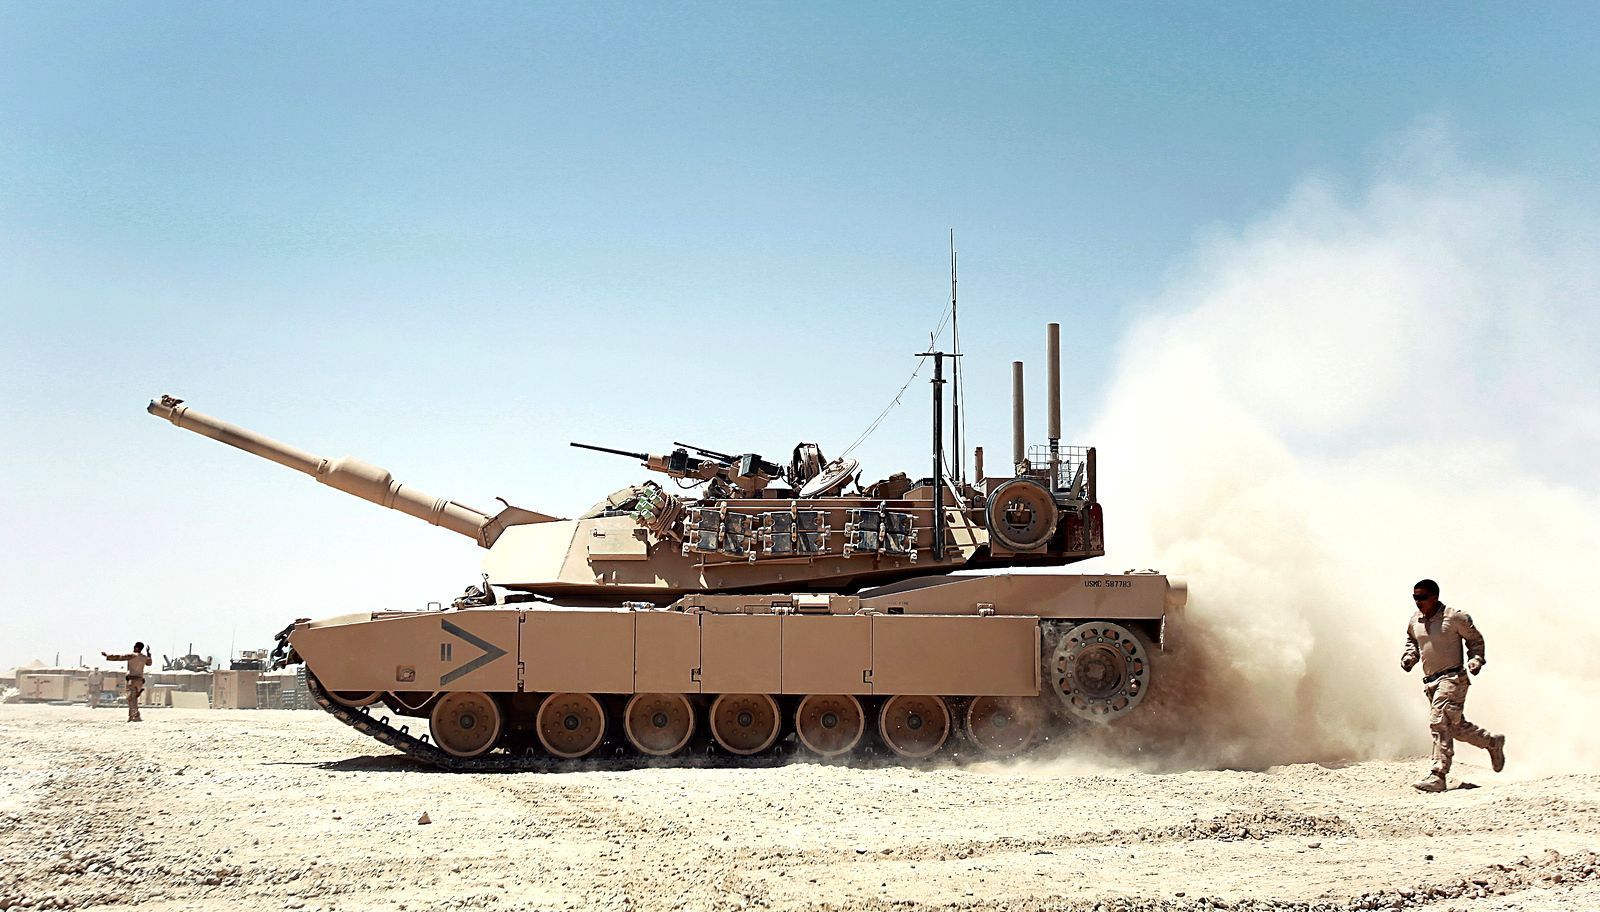 Dusty-Military-Vehicle-in-Desert